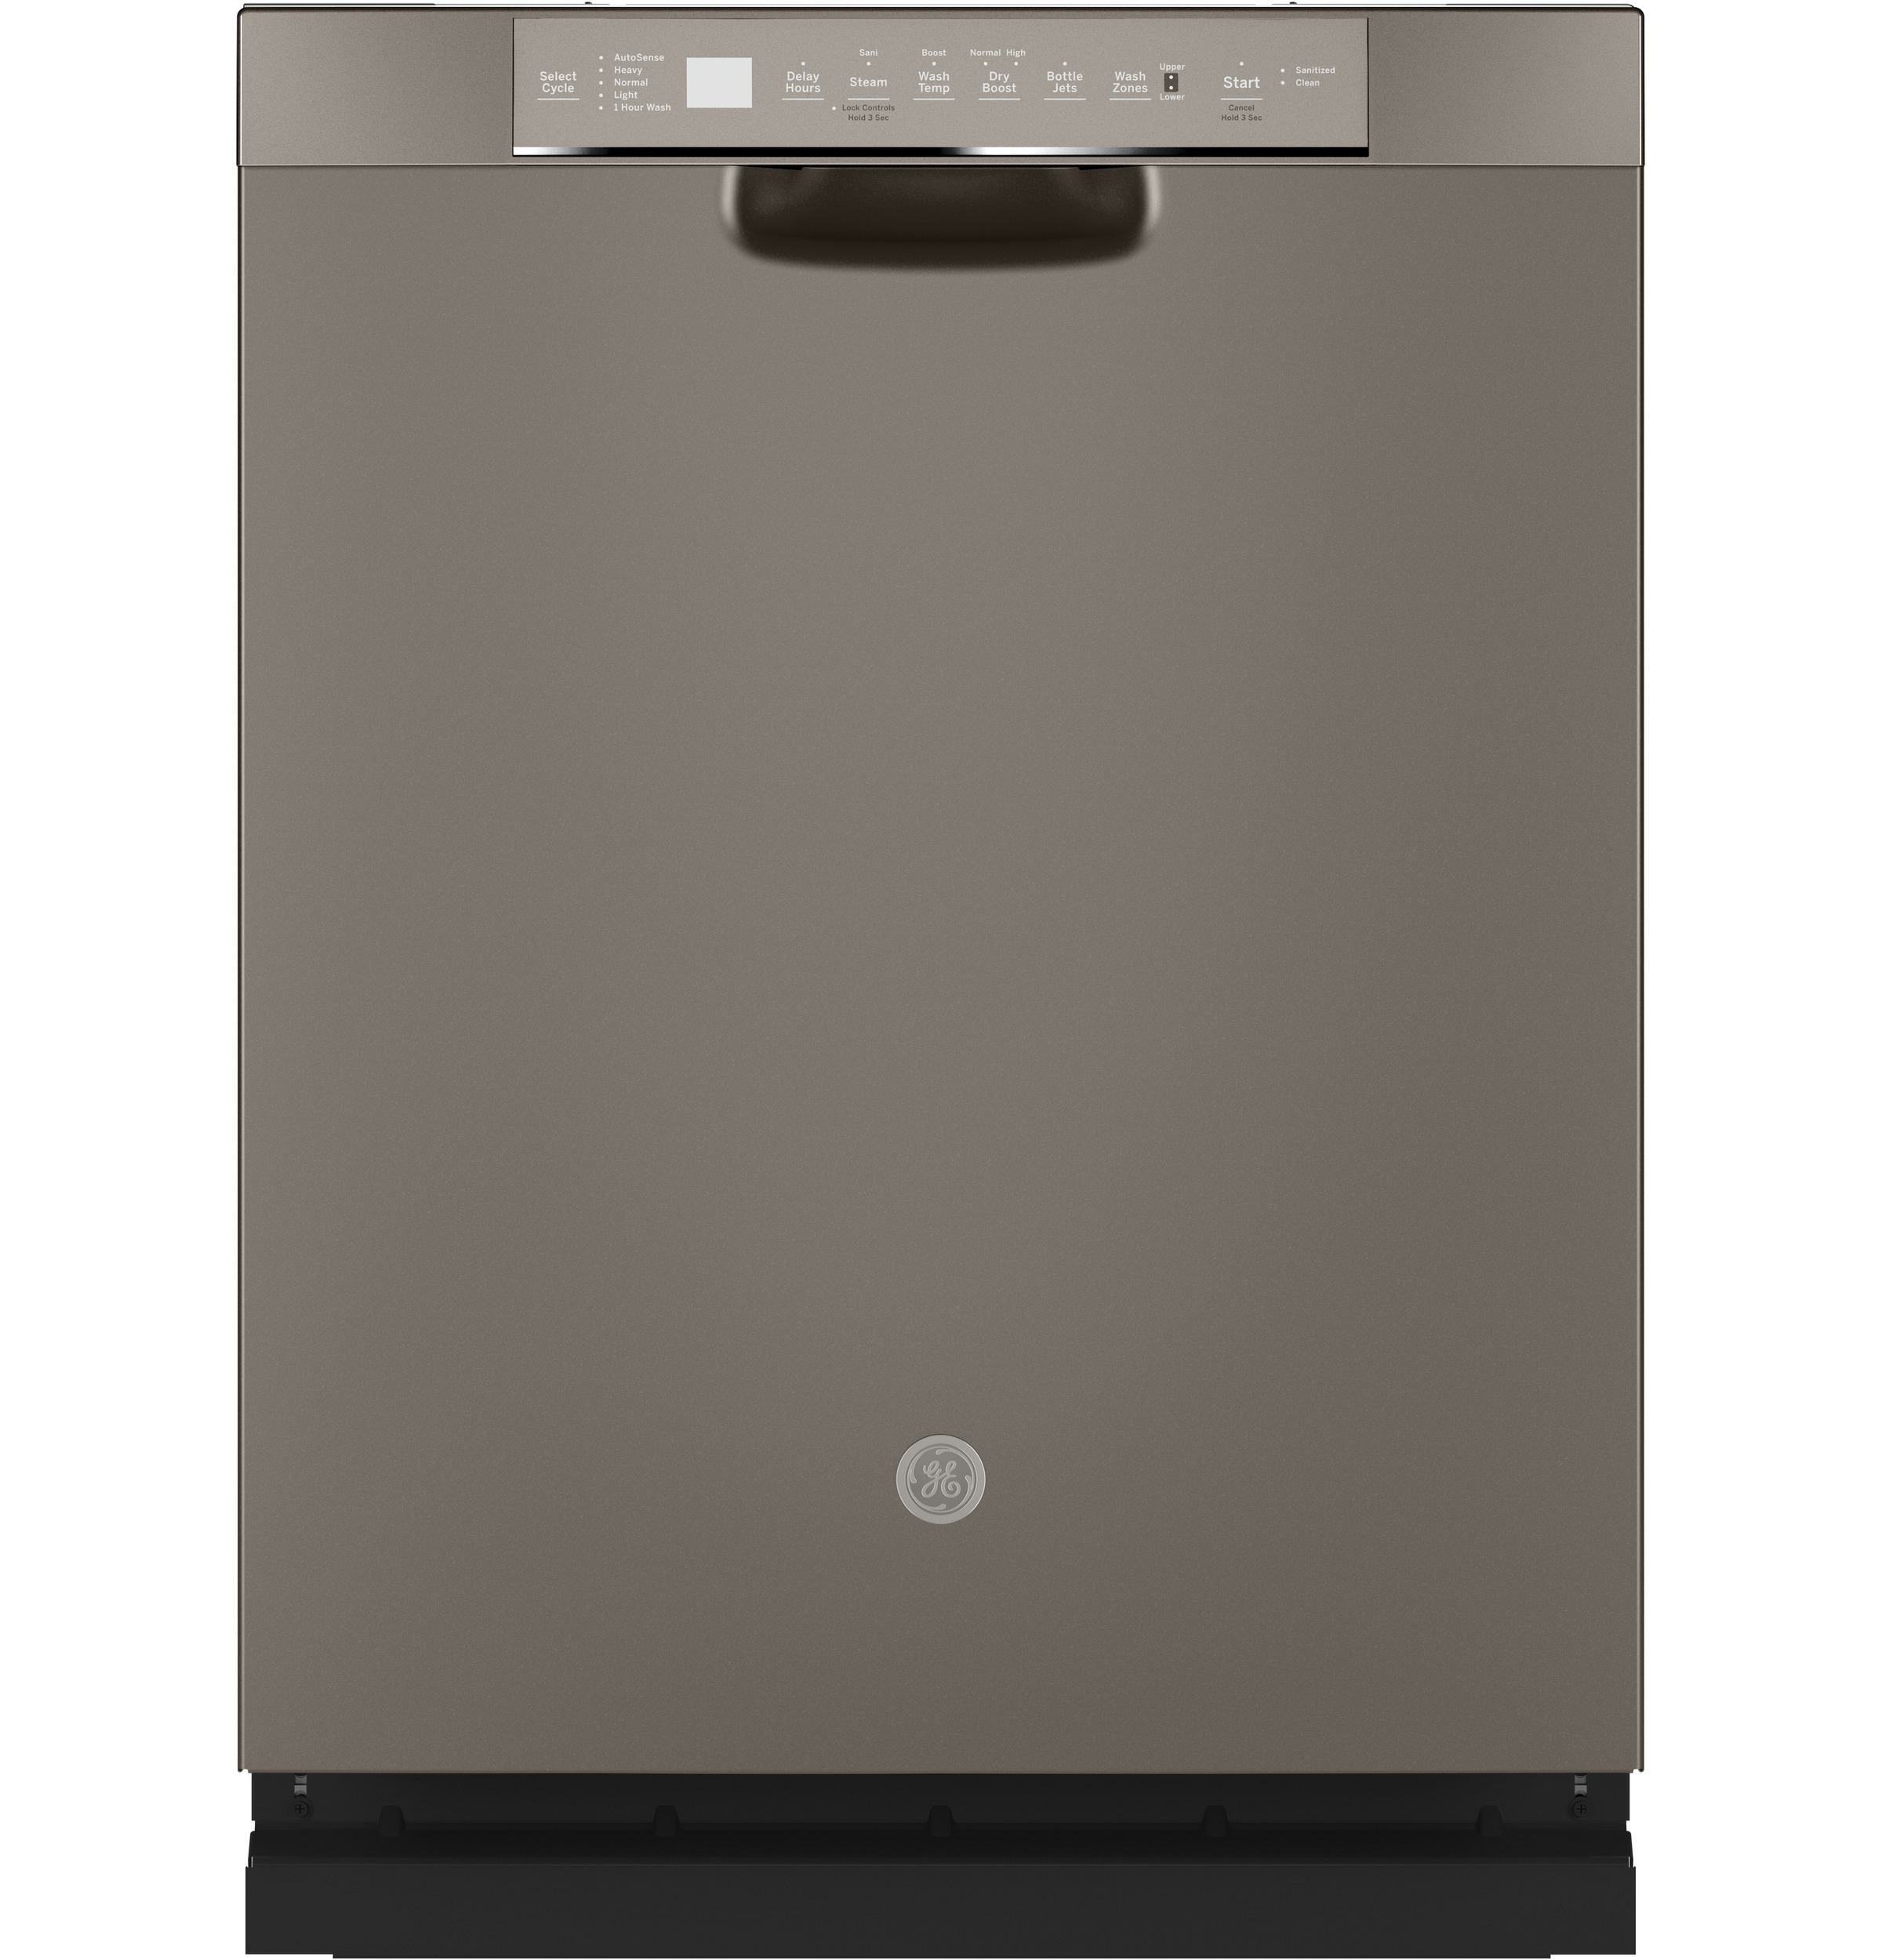 GE GE® Front Control with Stainless Steel Interior Dishwasher with Sanitize Cycle & Dry Boost